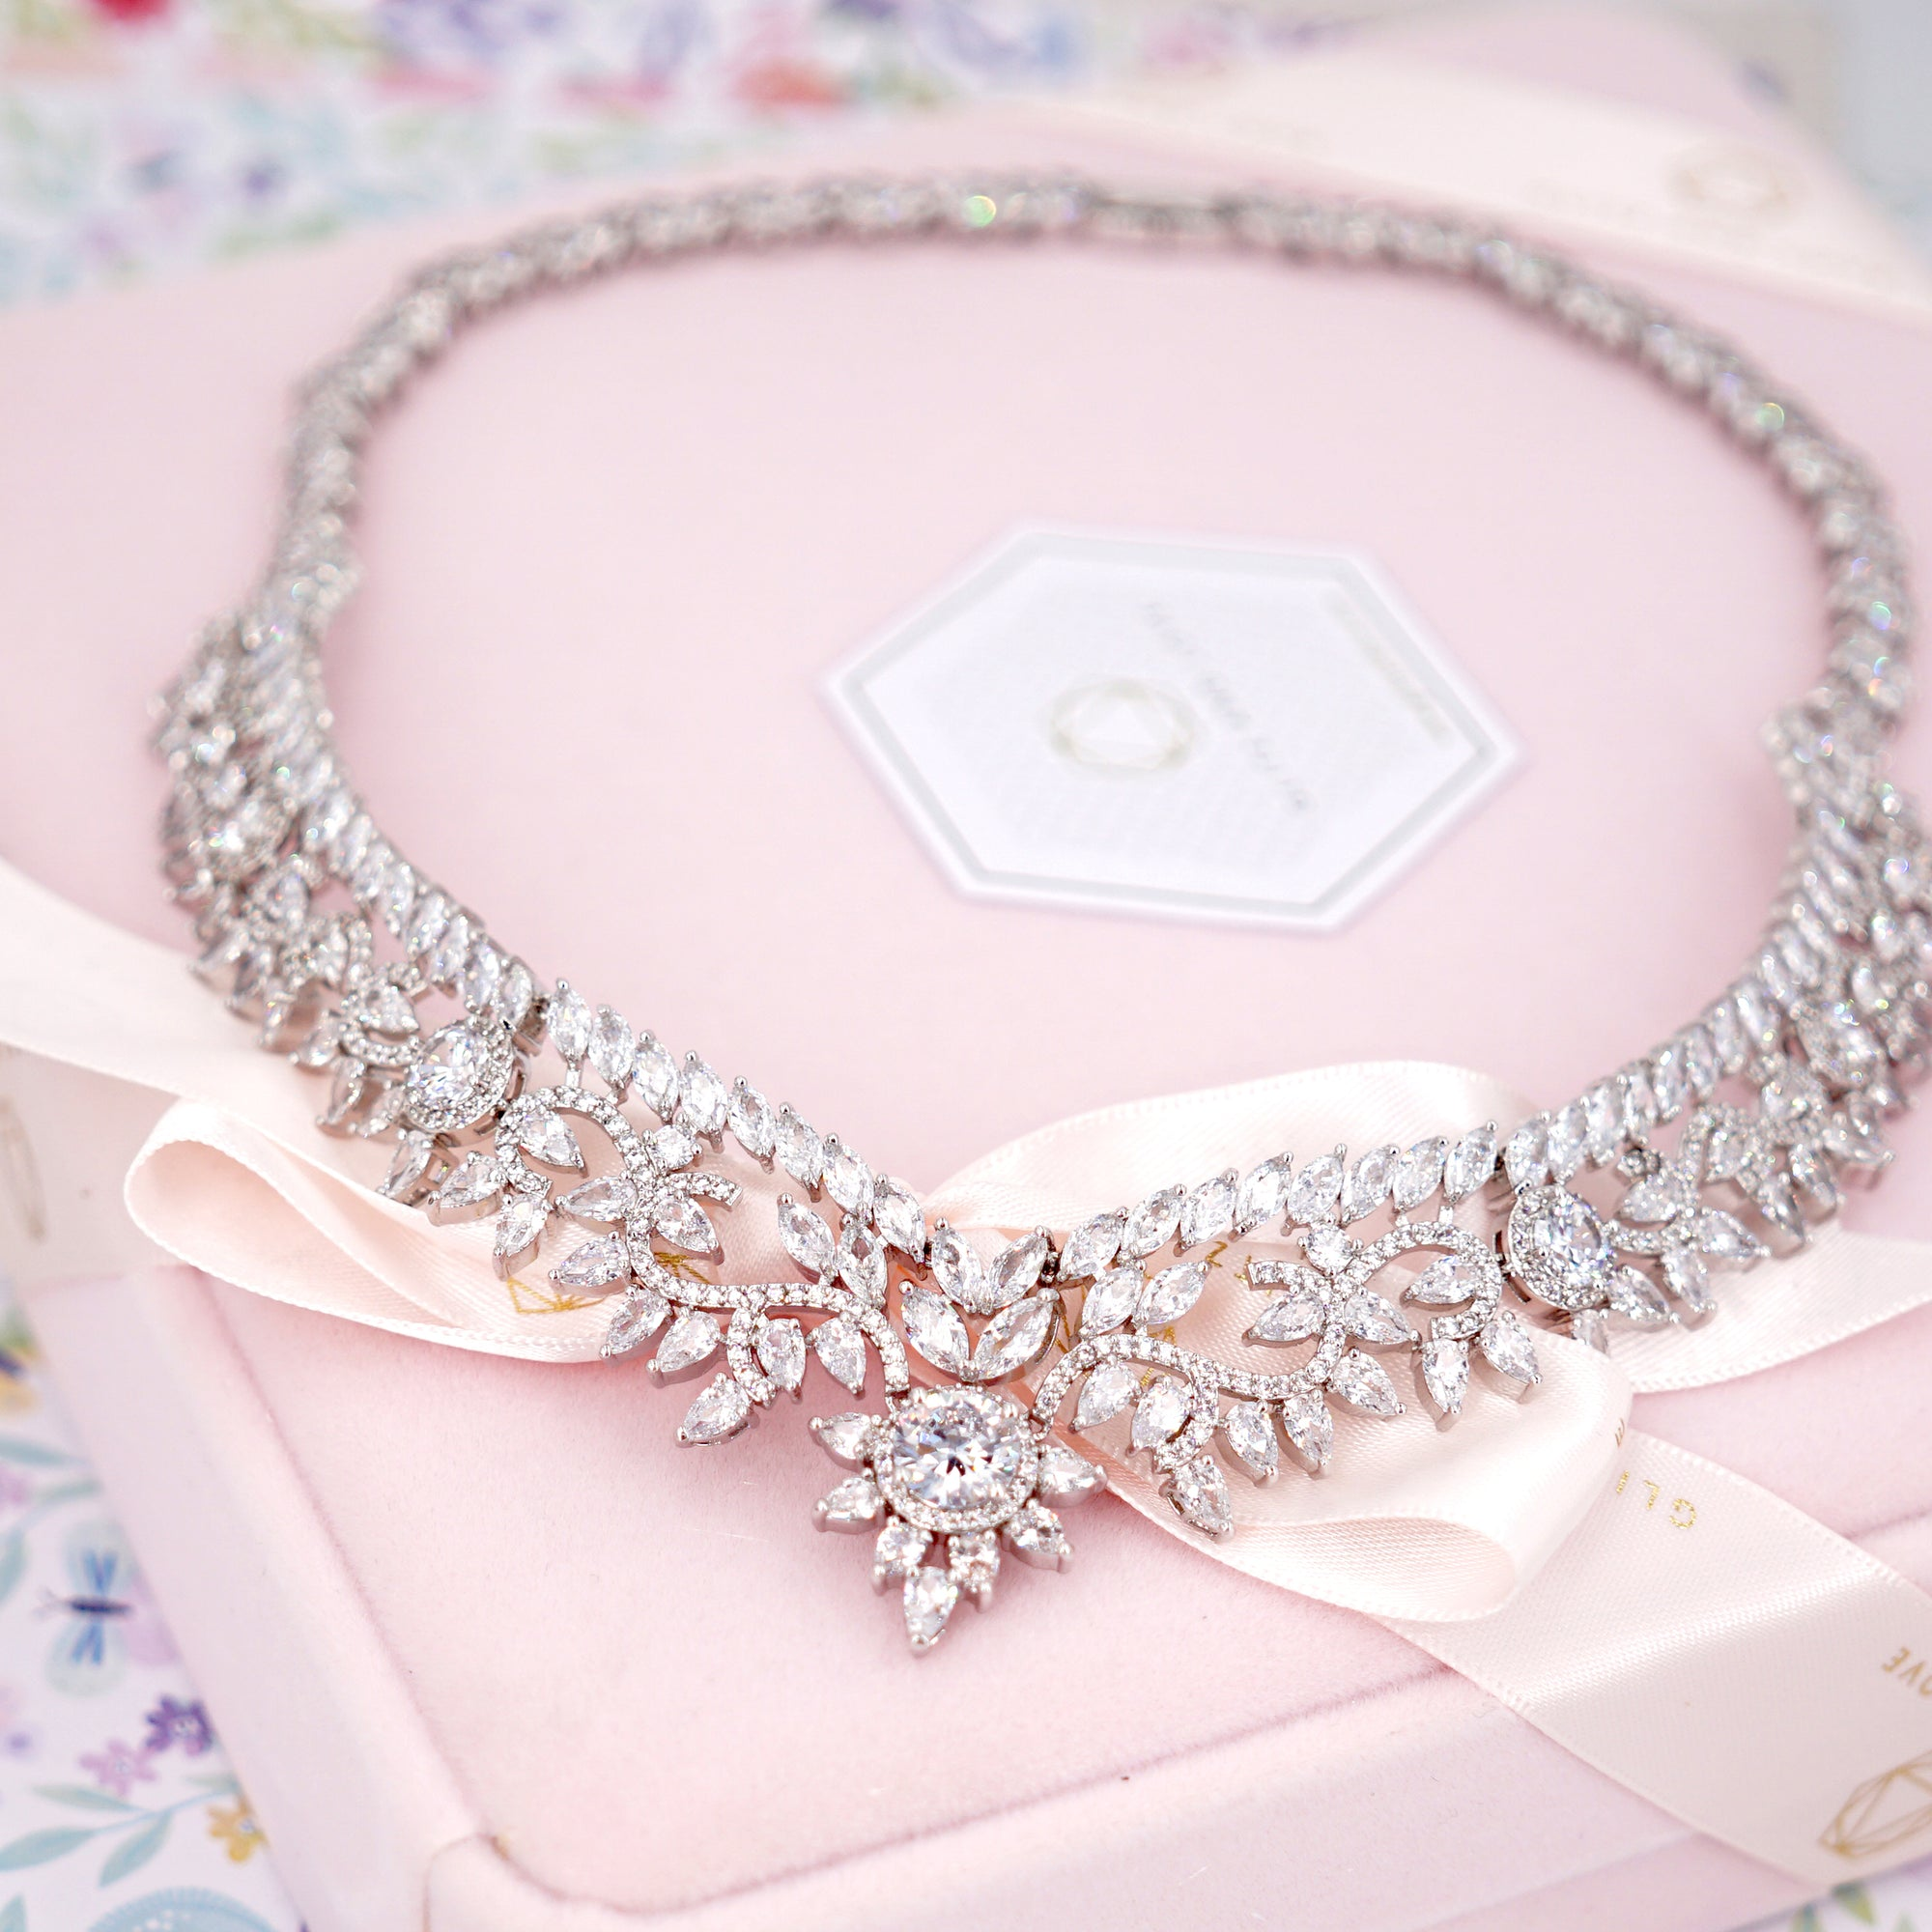 Glitz & Love | Statement Necklace for Brides | Bridal Jewelry to Impress | Elegant Timeless Confident Princess